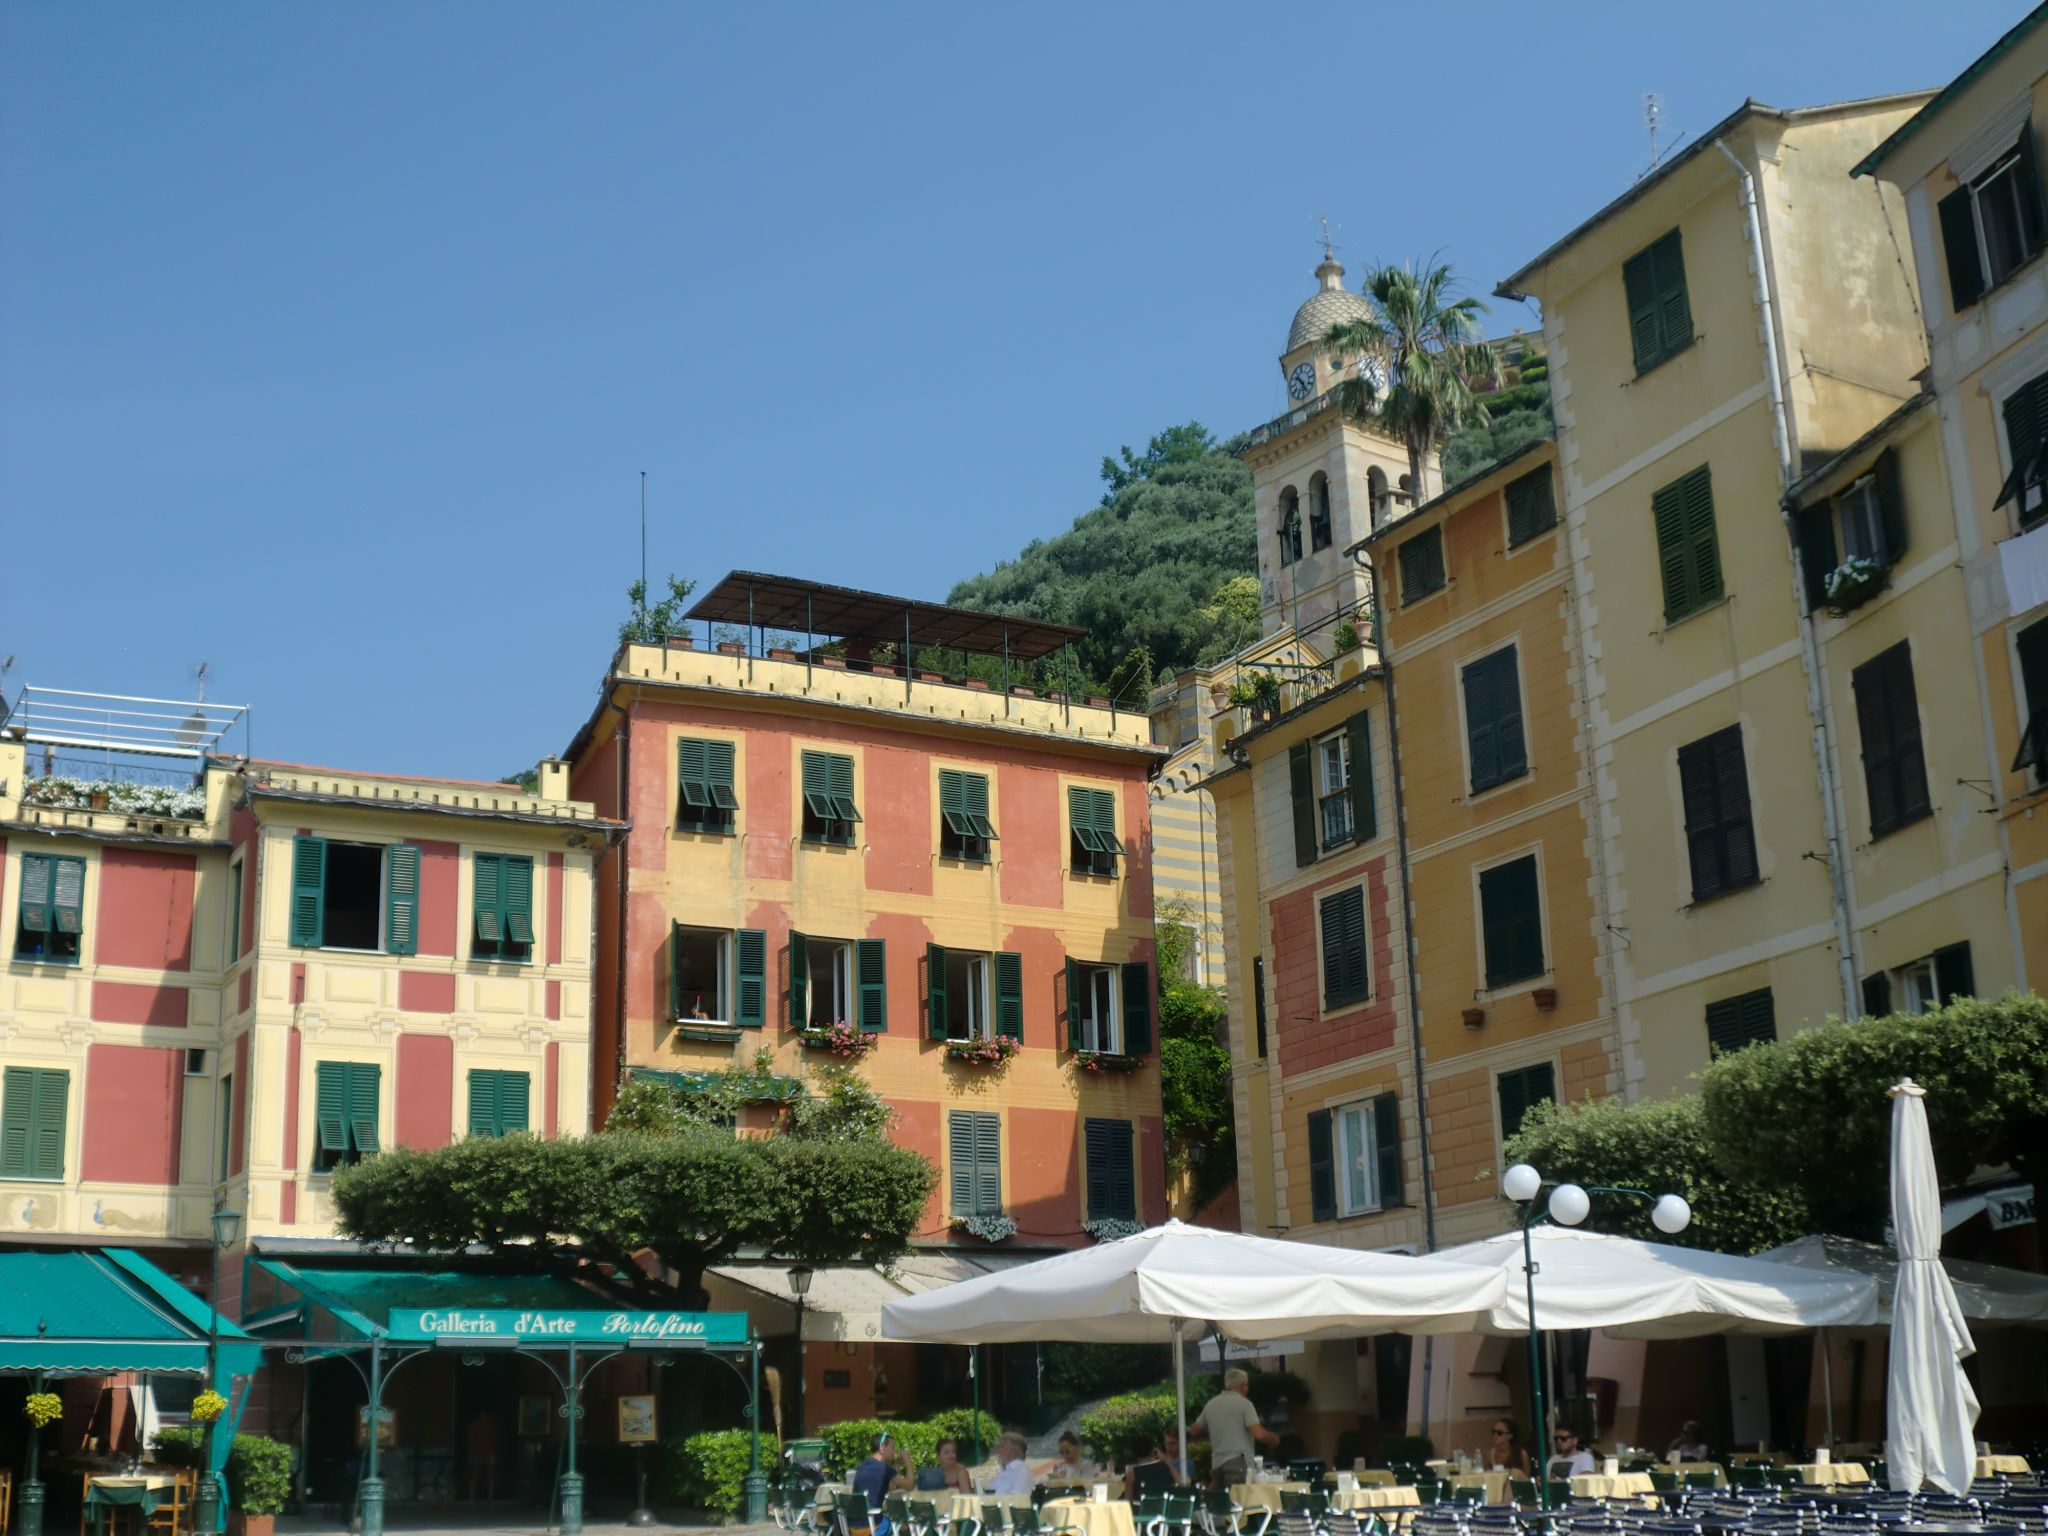 Portofino 5 - Portofino: a small pearl on the sea